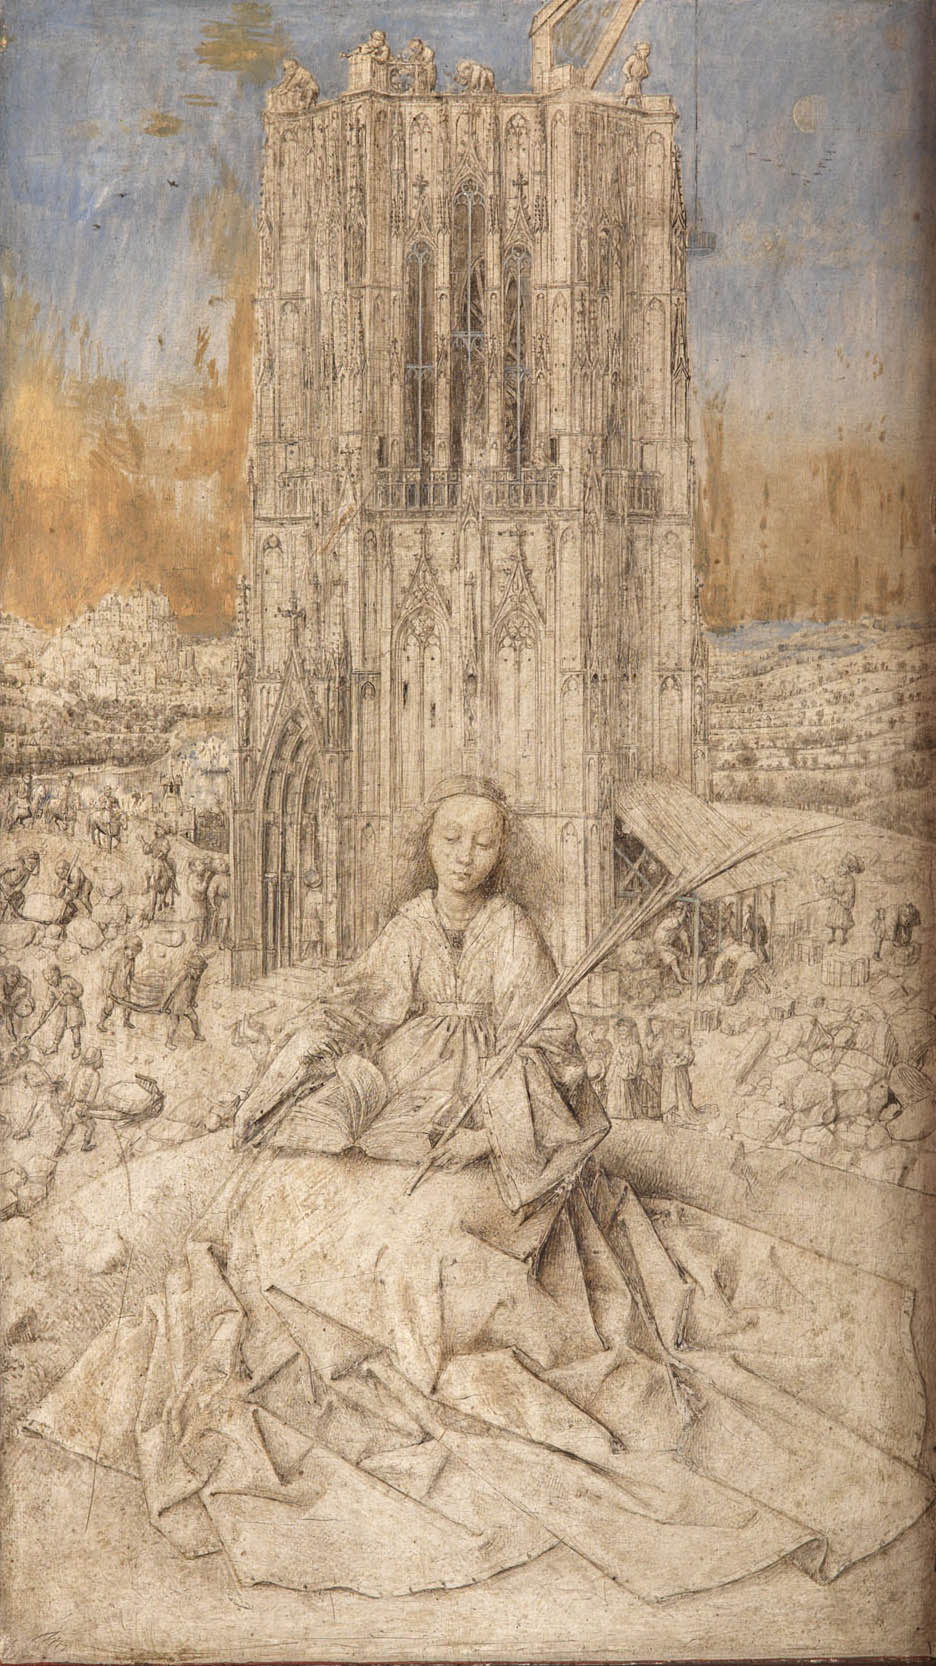 Jan Van Eyck, Santa Barbara, 1437